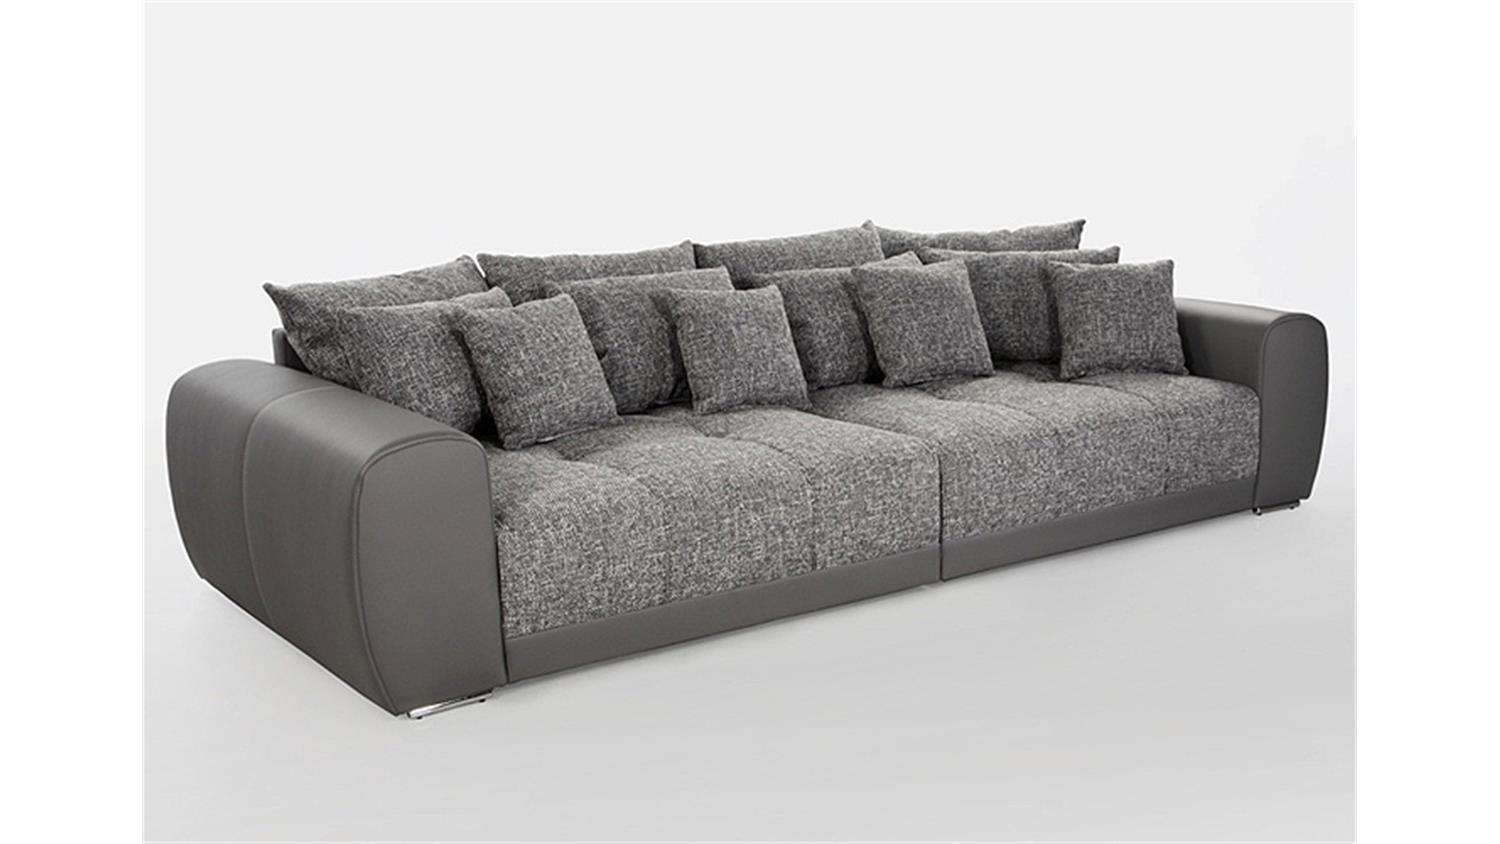 Big Sofa Sam Polstermobel Xxl Sofa In Grau Hellgrau 310 Cm